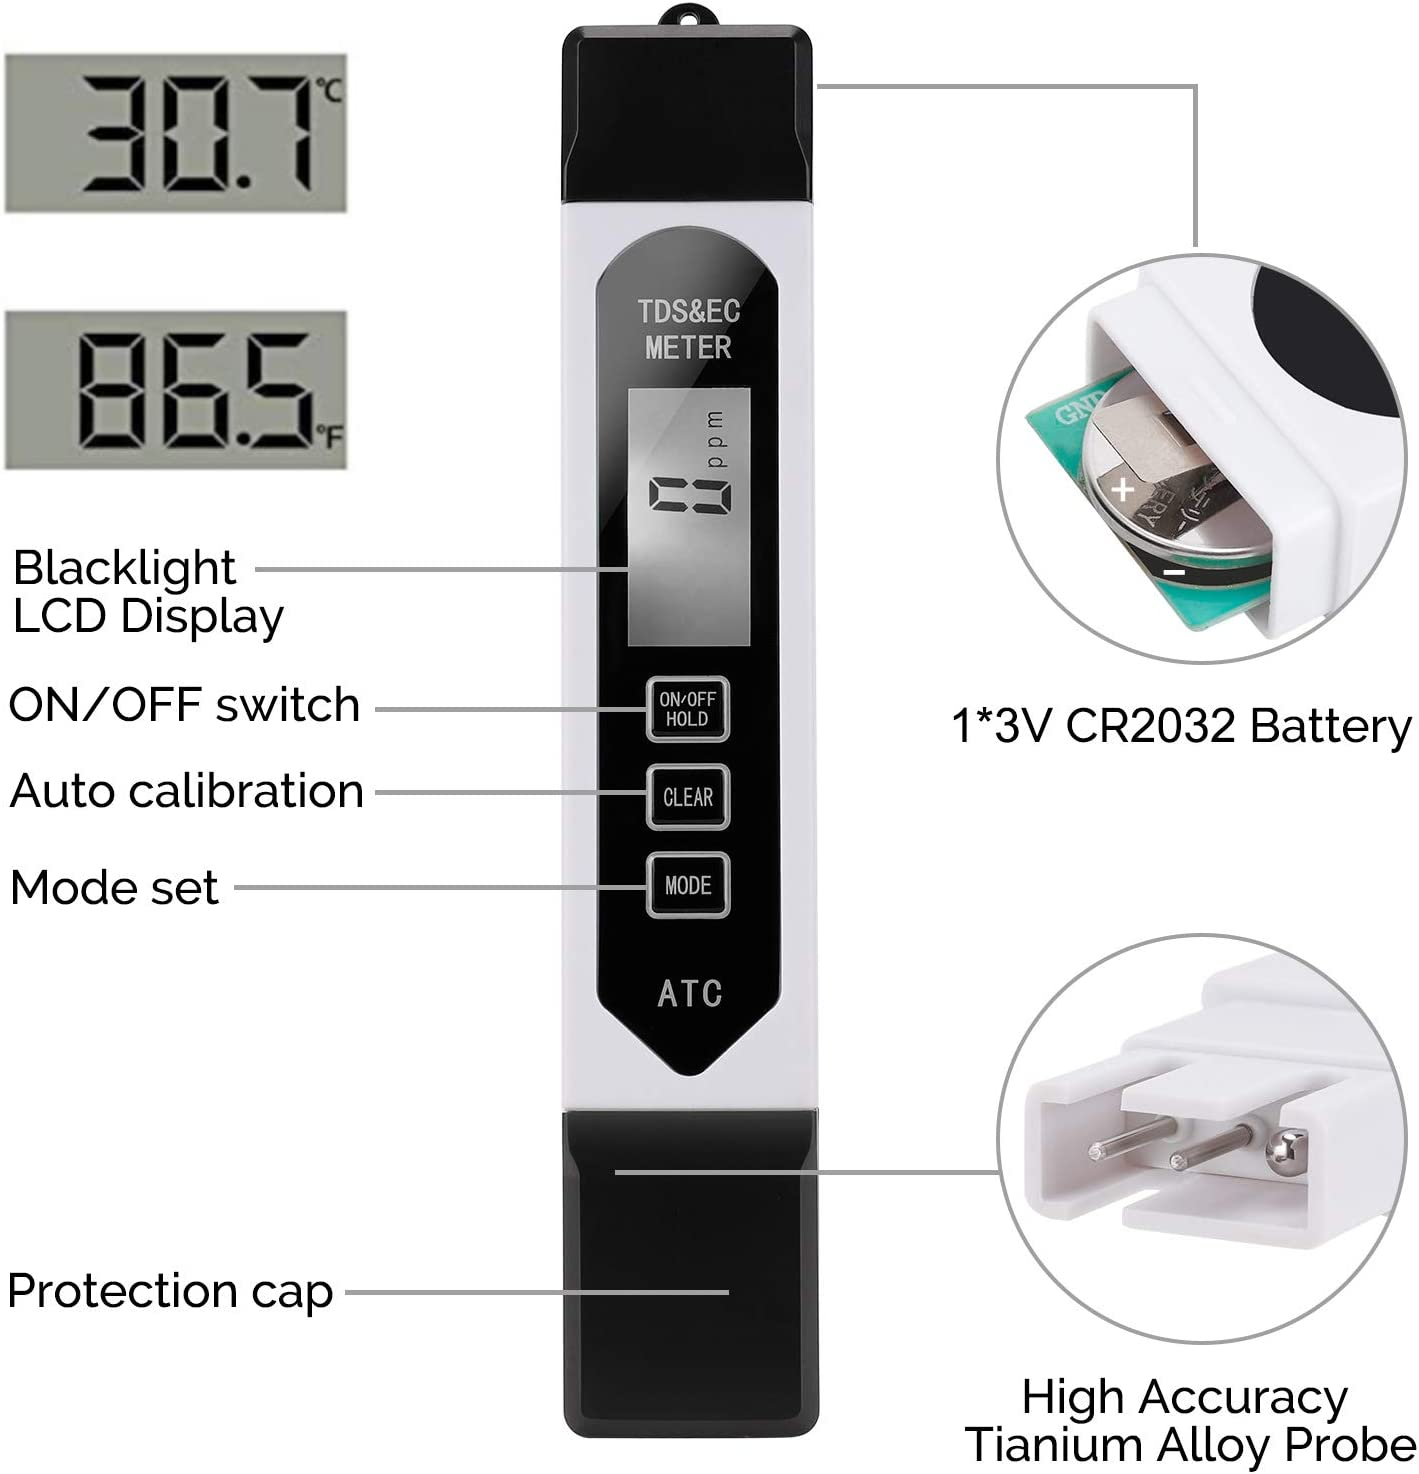 Hydroponics and Water Purifier Ideal ppm Meter for Drinking Water Professional Water Quality Tester,EC TDS Meter 4 in 1 Portable High Precision Digital TDS PPM Meter